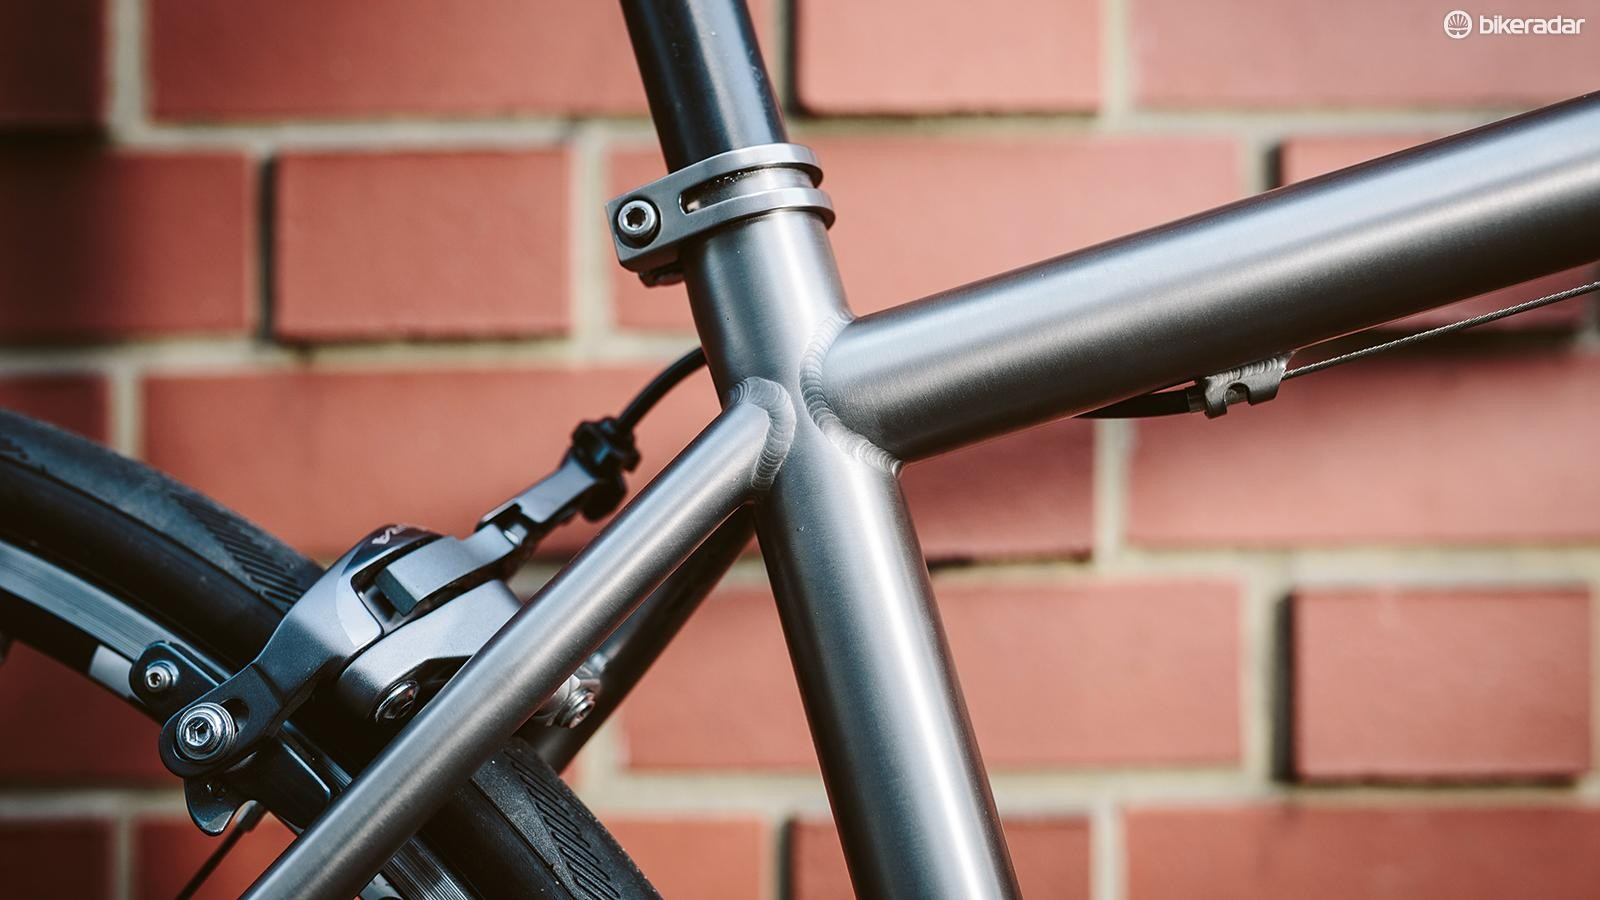 The frame is double-butted titanium